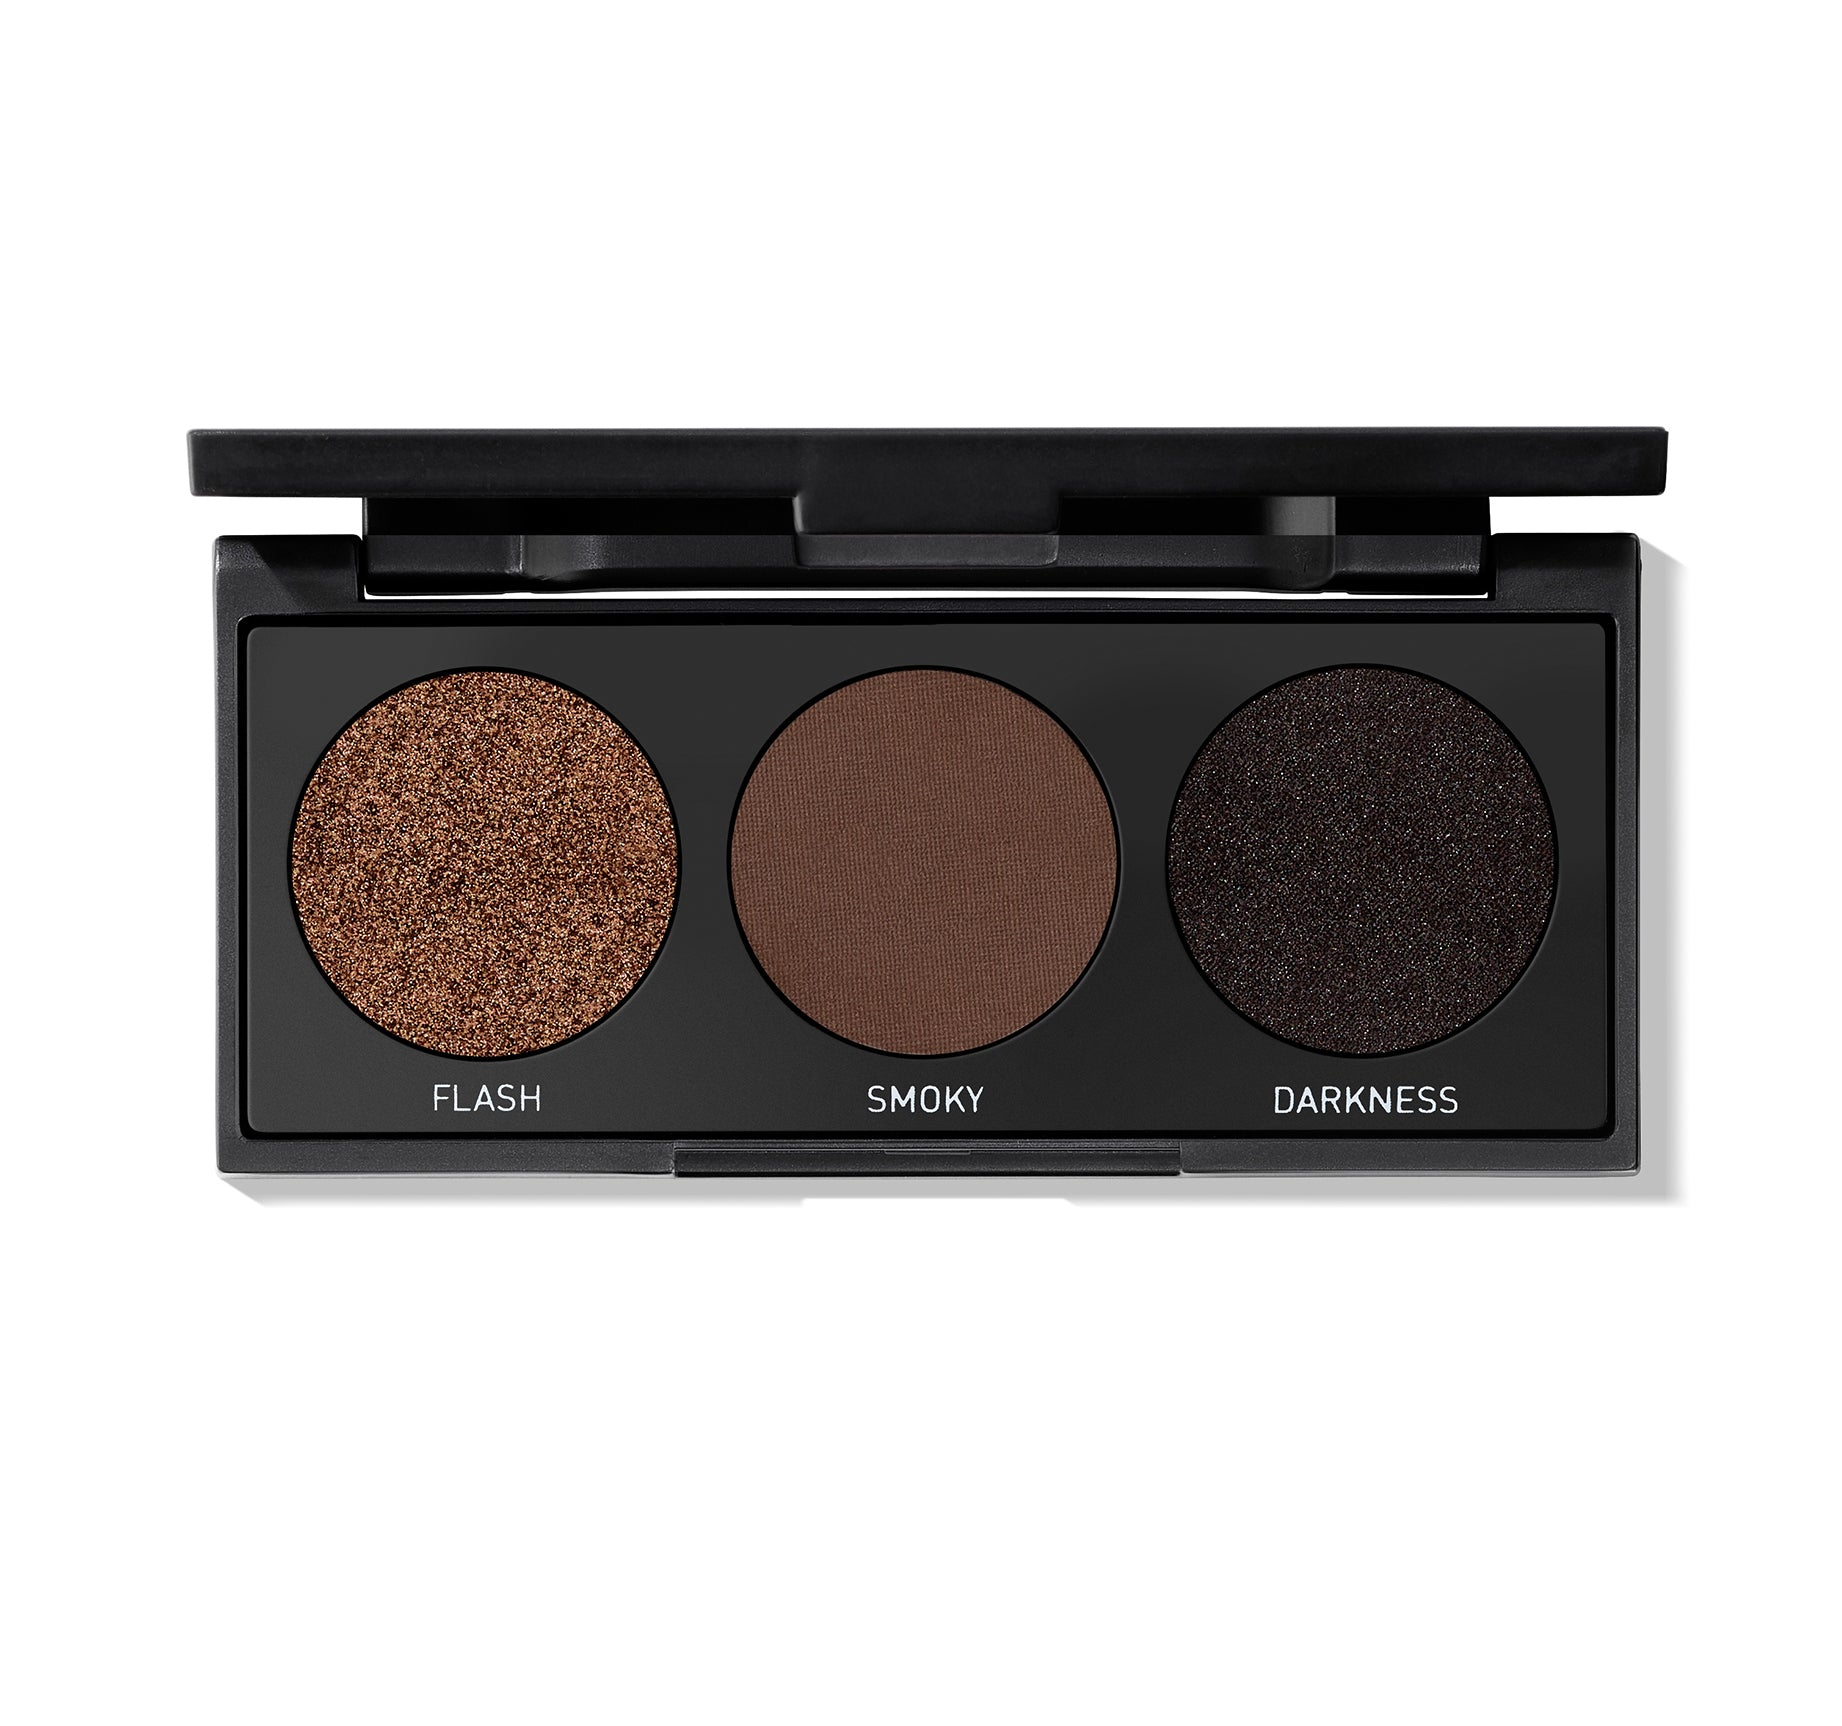 3A DEEP SMOKY EYESHADOW PALETTE, view larger image